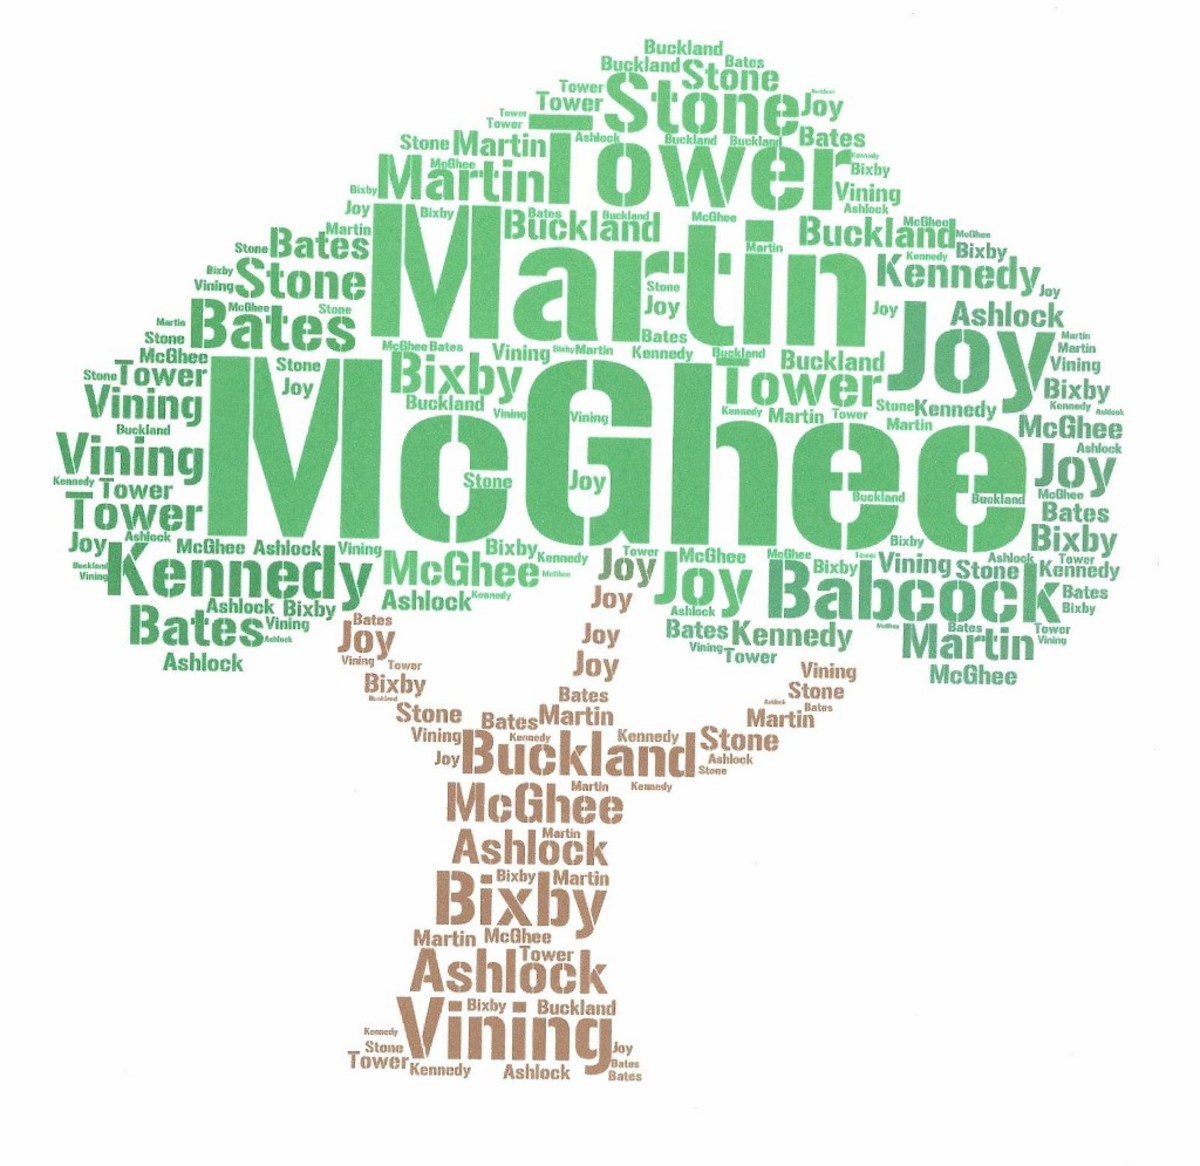 McGhee and Kennedy are my Scots-Irish ancestors. Other names on the tree like Buckland, Ashlock, Bates, Tower, Bixby, Martin, Vining and Joy are from England.